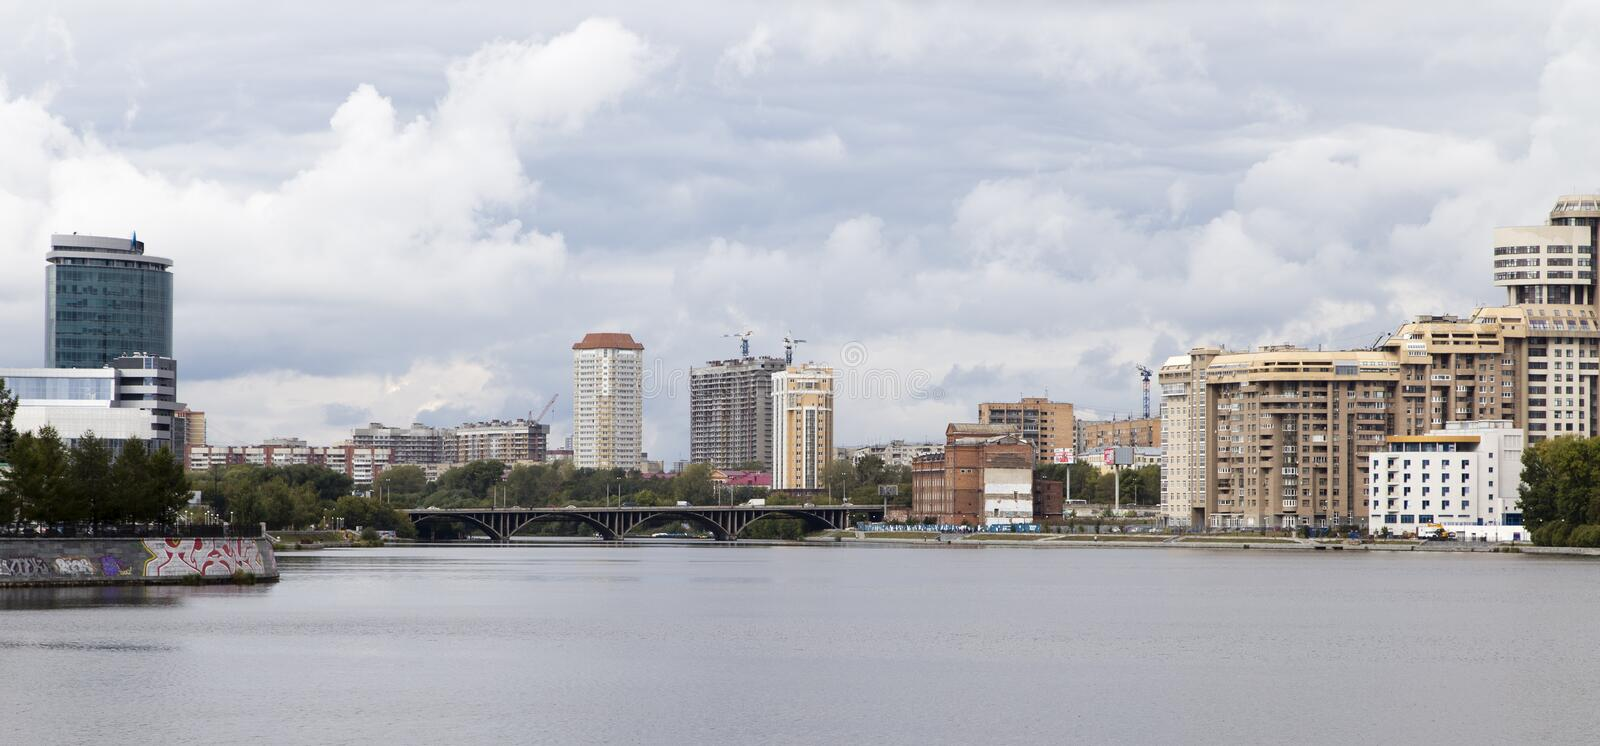 Cityscape in yekaterinburg ,russian federation royalty free stock photo